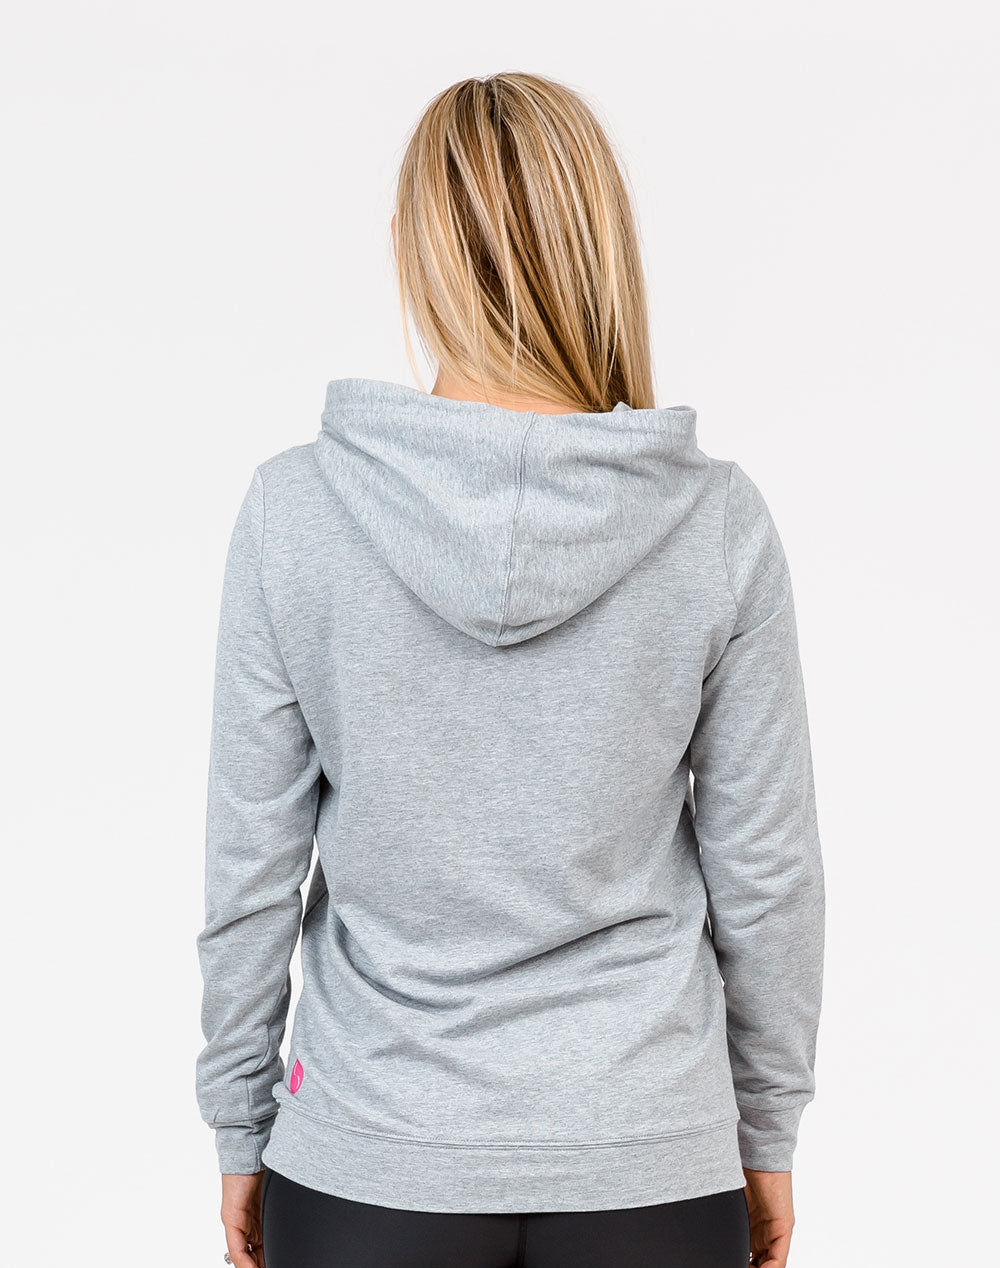 back view of a mum in a grey casual breastfeeding hoodie